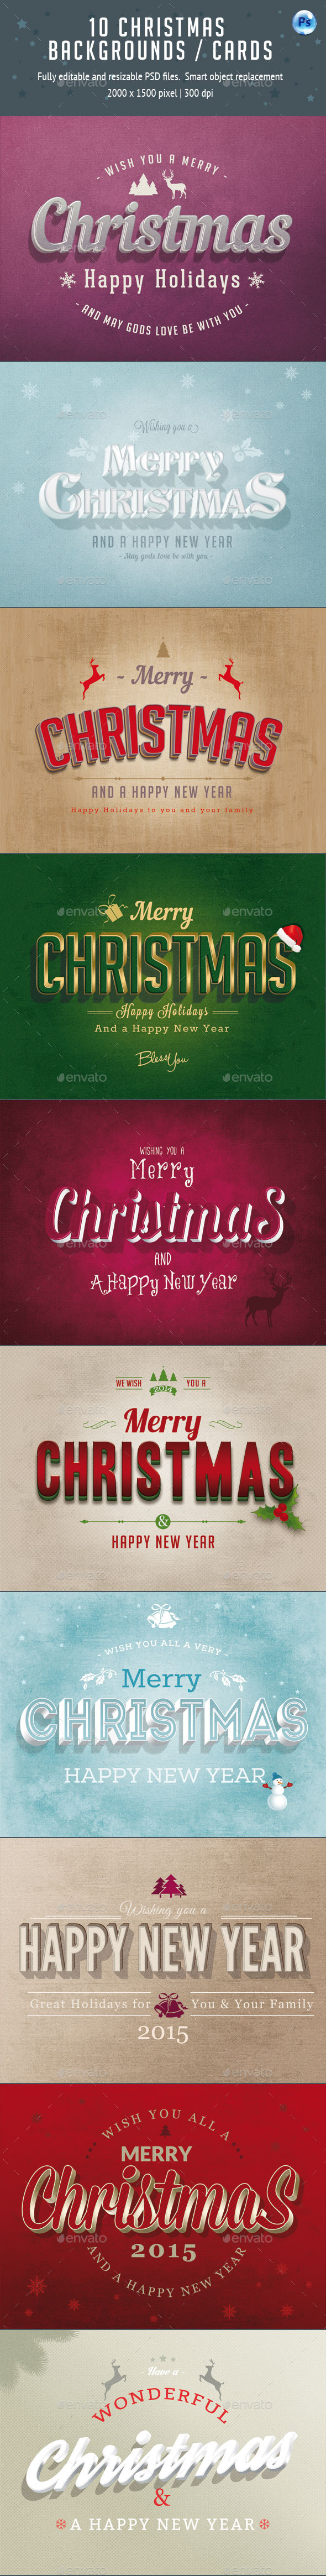 10 Christmas Cards / Backgrounds - Backgrounds Graphics